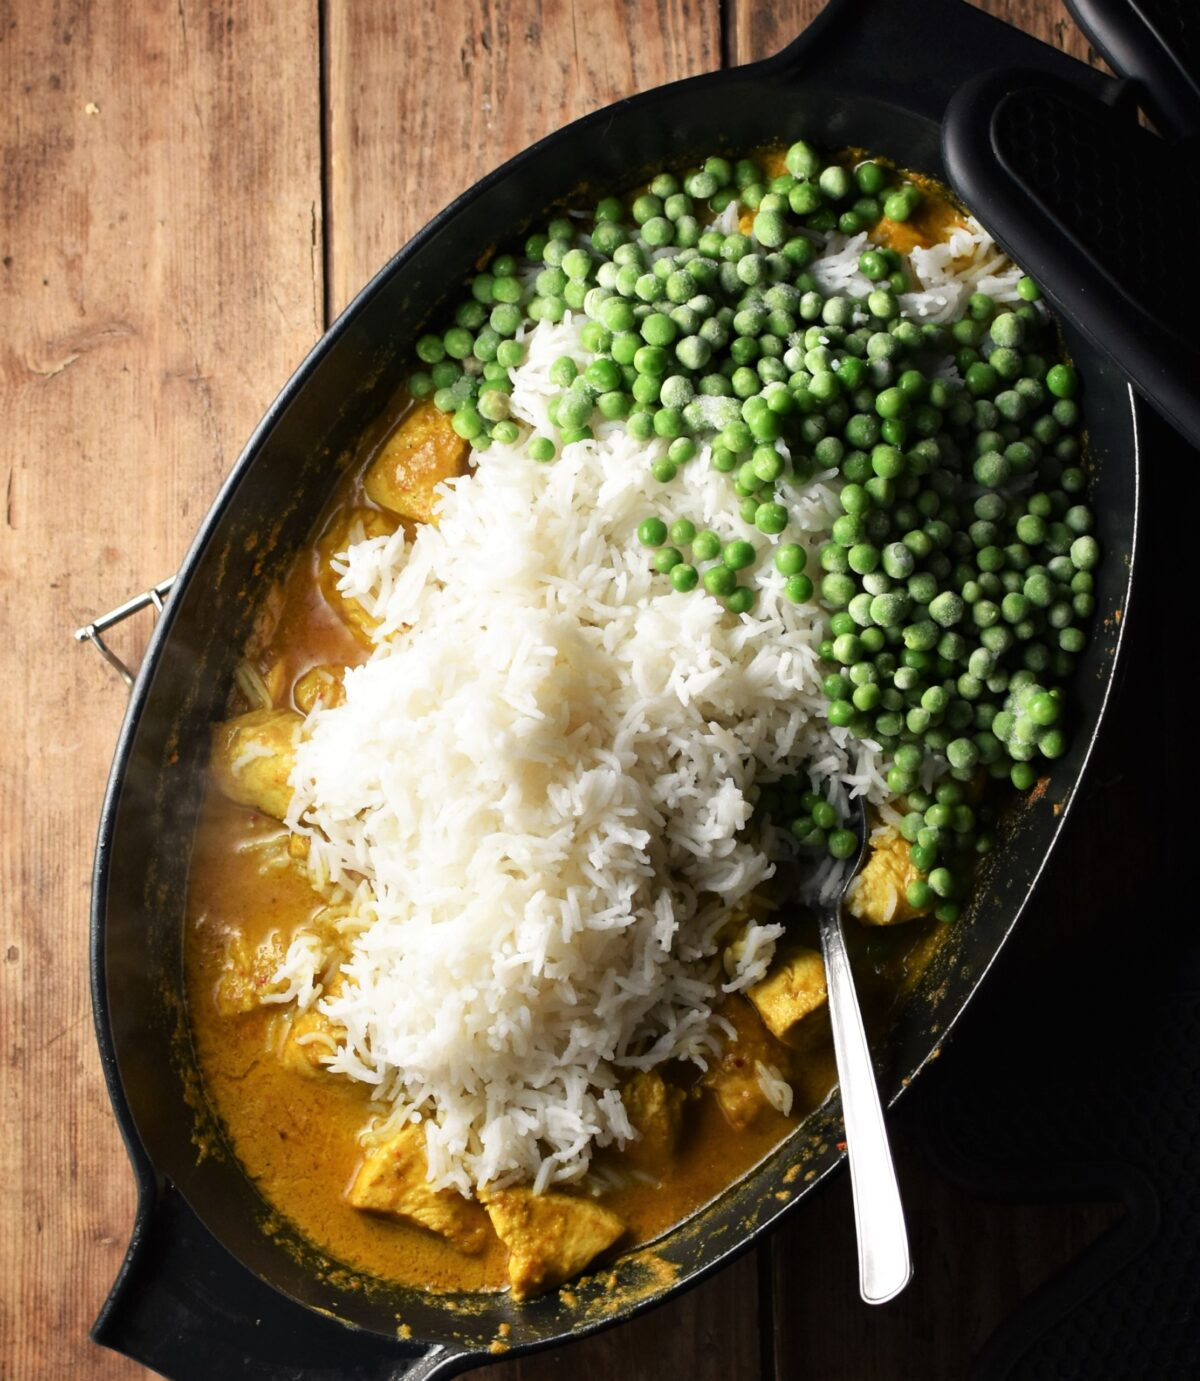 Cooked rice and peas on top of creamy chicken curry with spoon in large black oval pan.